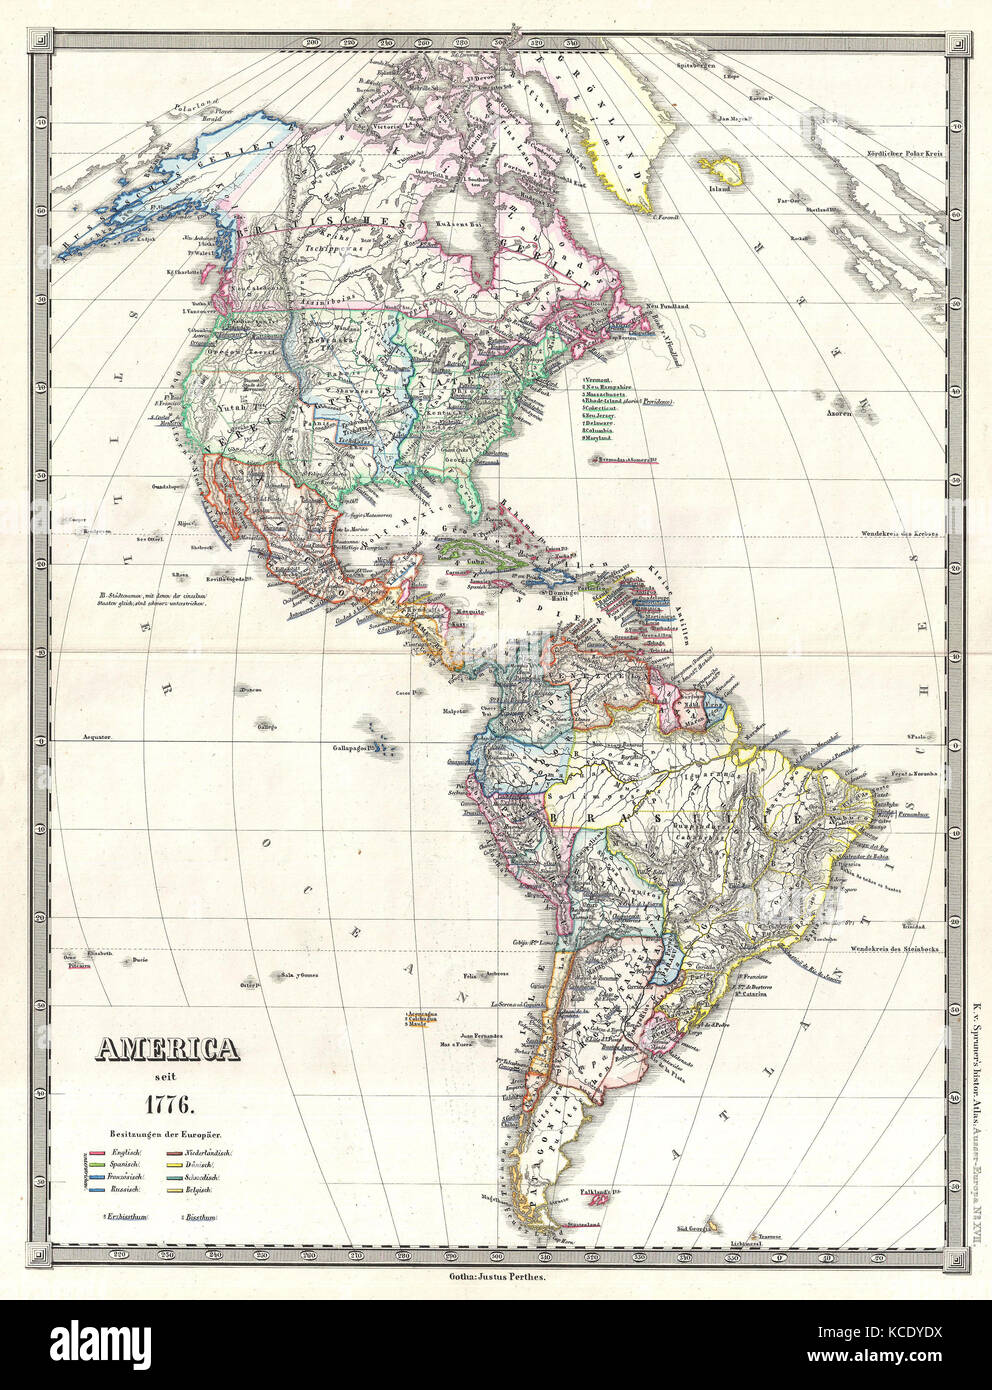 Vintage Map Americas Stock Photos & Vintage Map Americas ... on